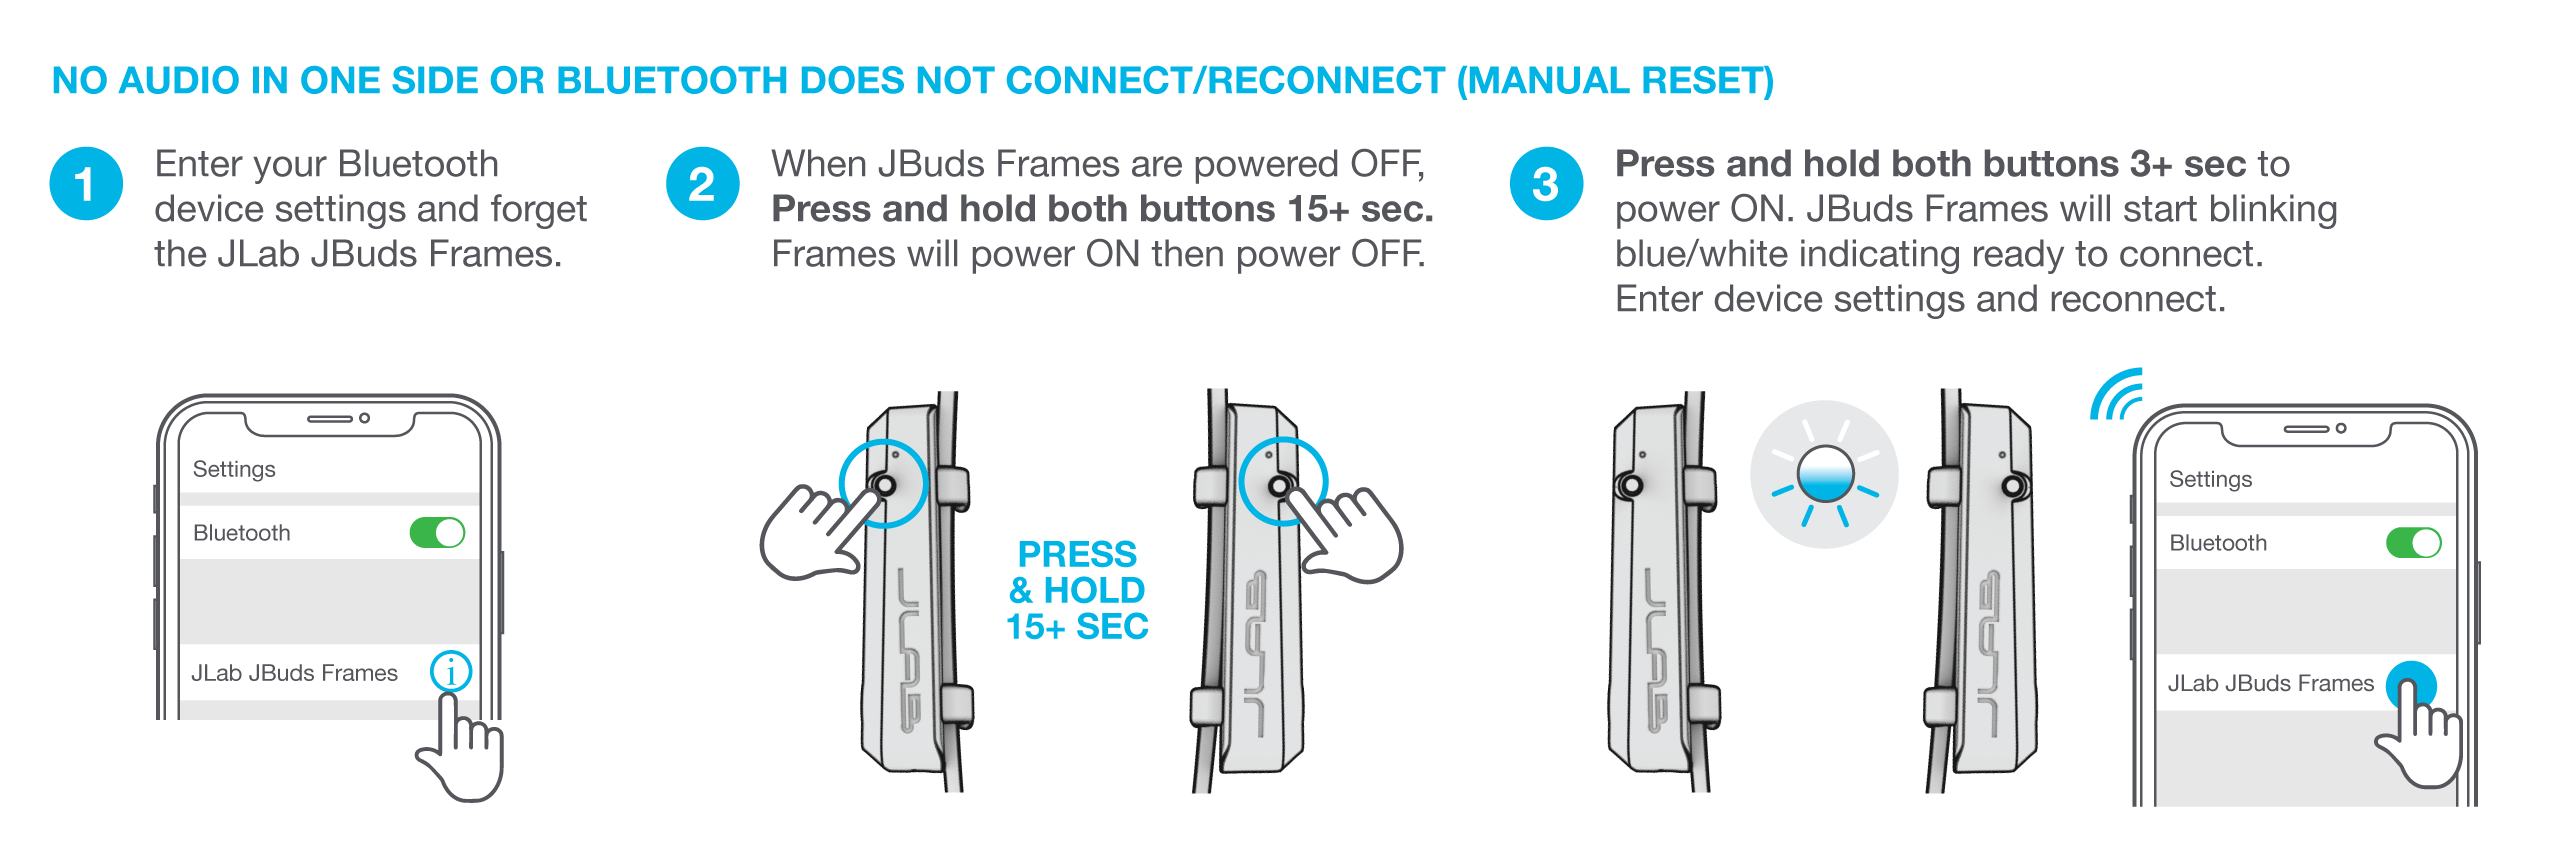 How to manually reset your JBuds Frames